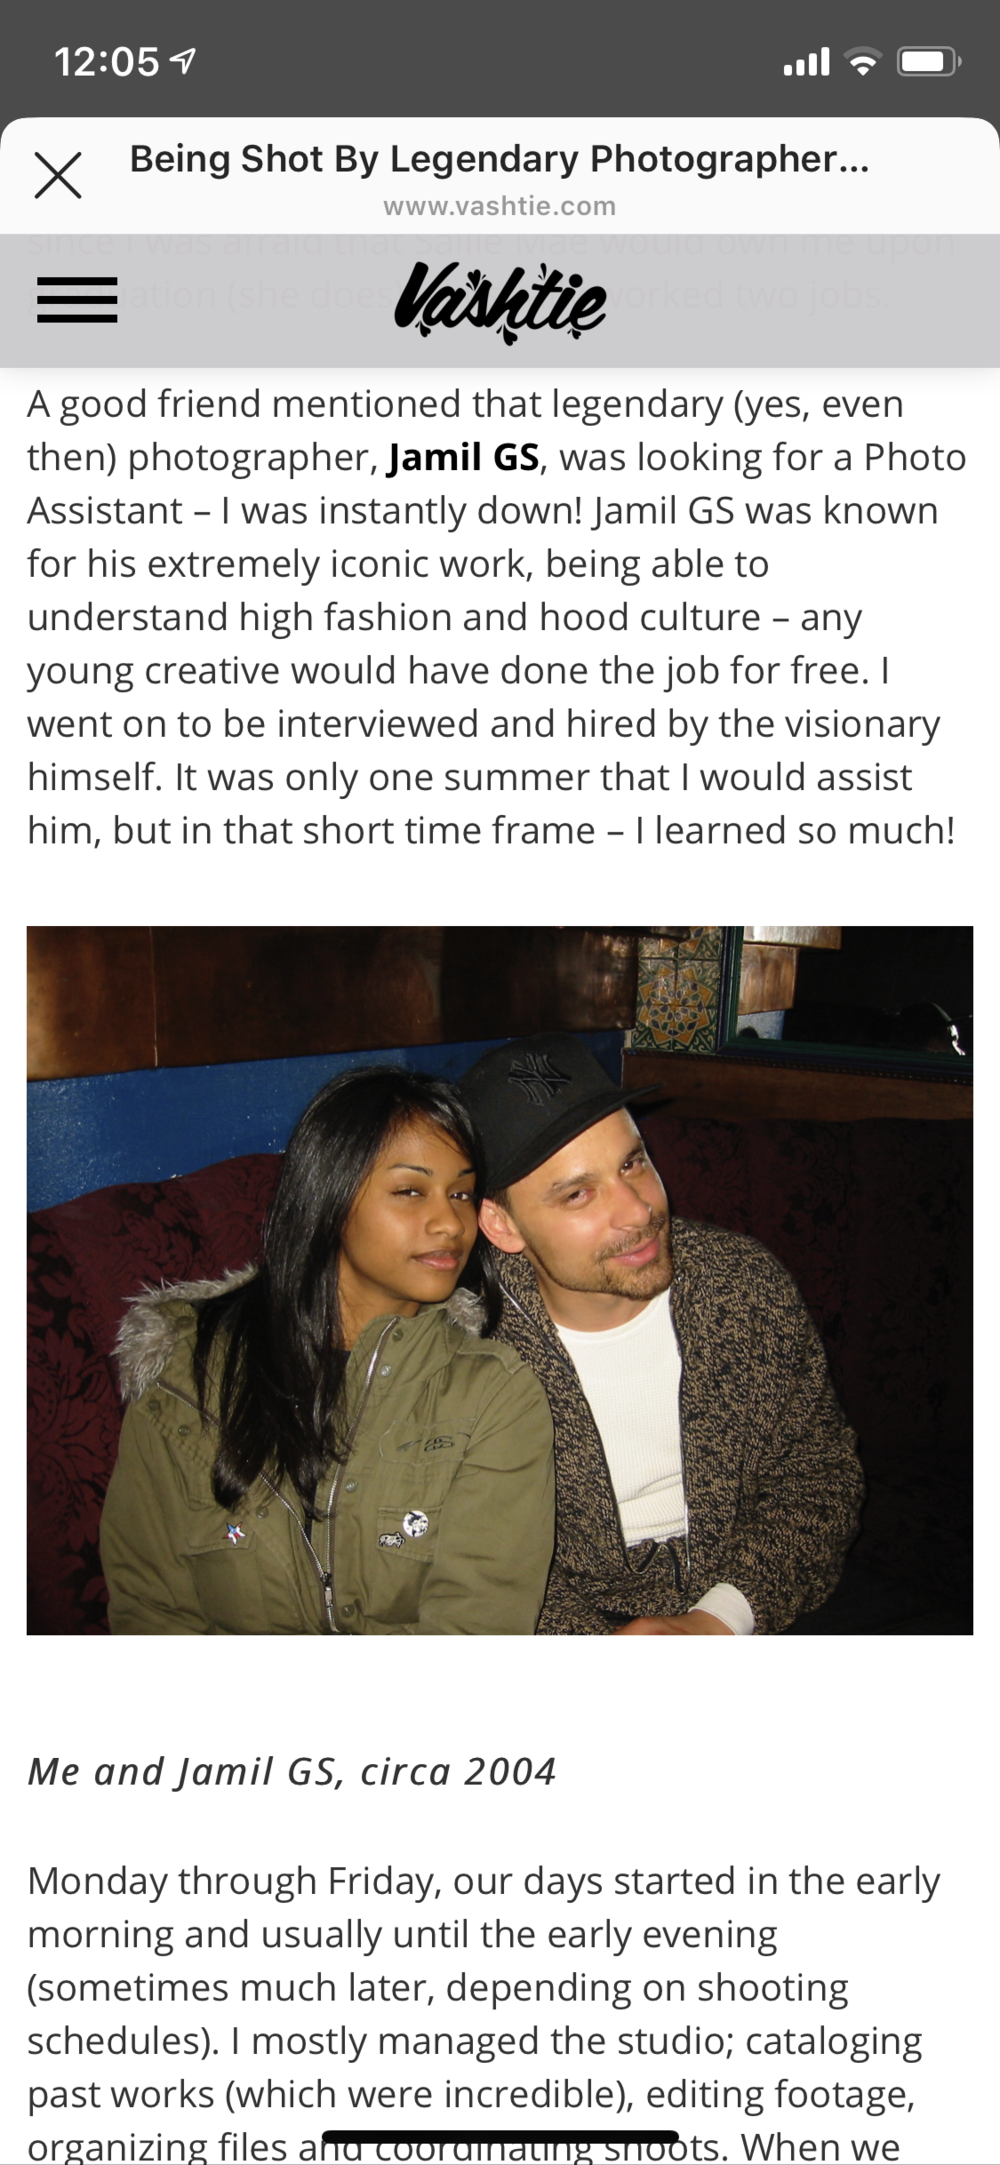 READ FULL STORY AT  VASHTIE.COM